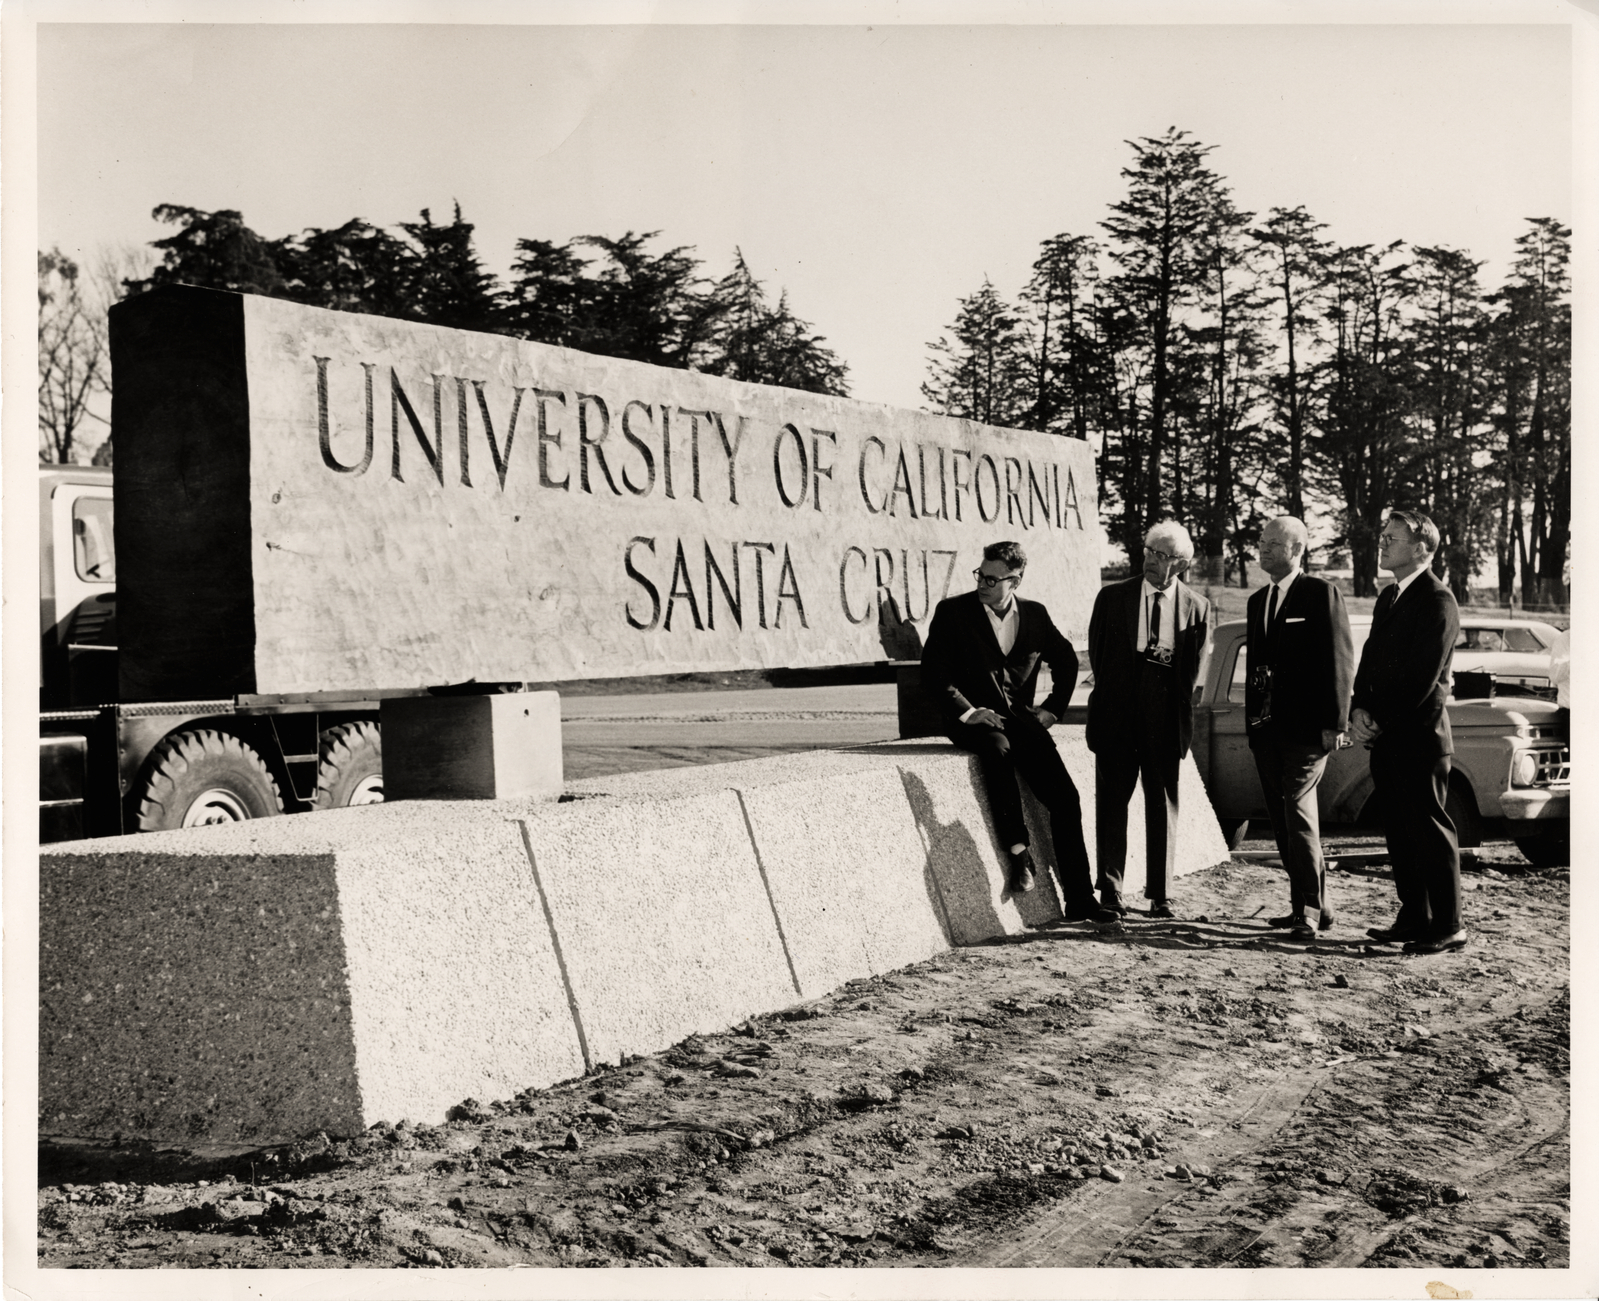 Founders looking at UCSC sign in 1965